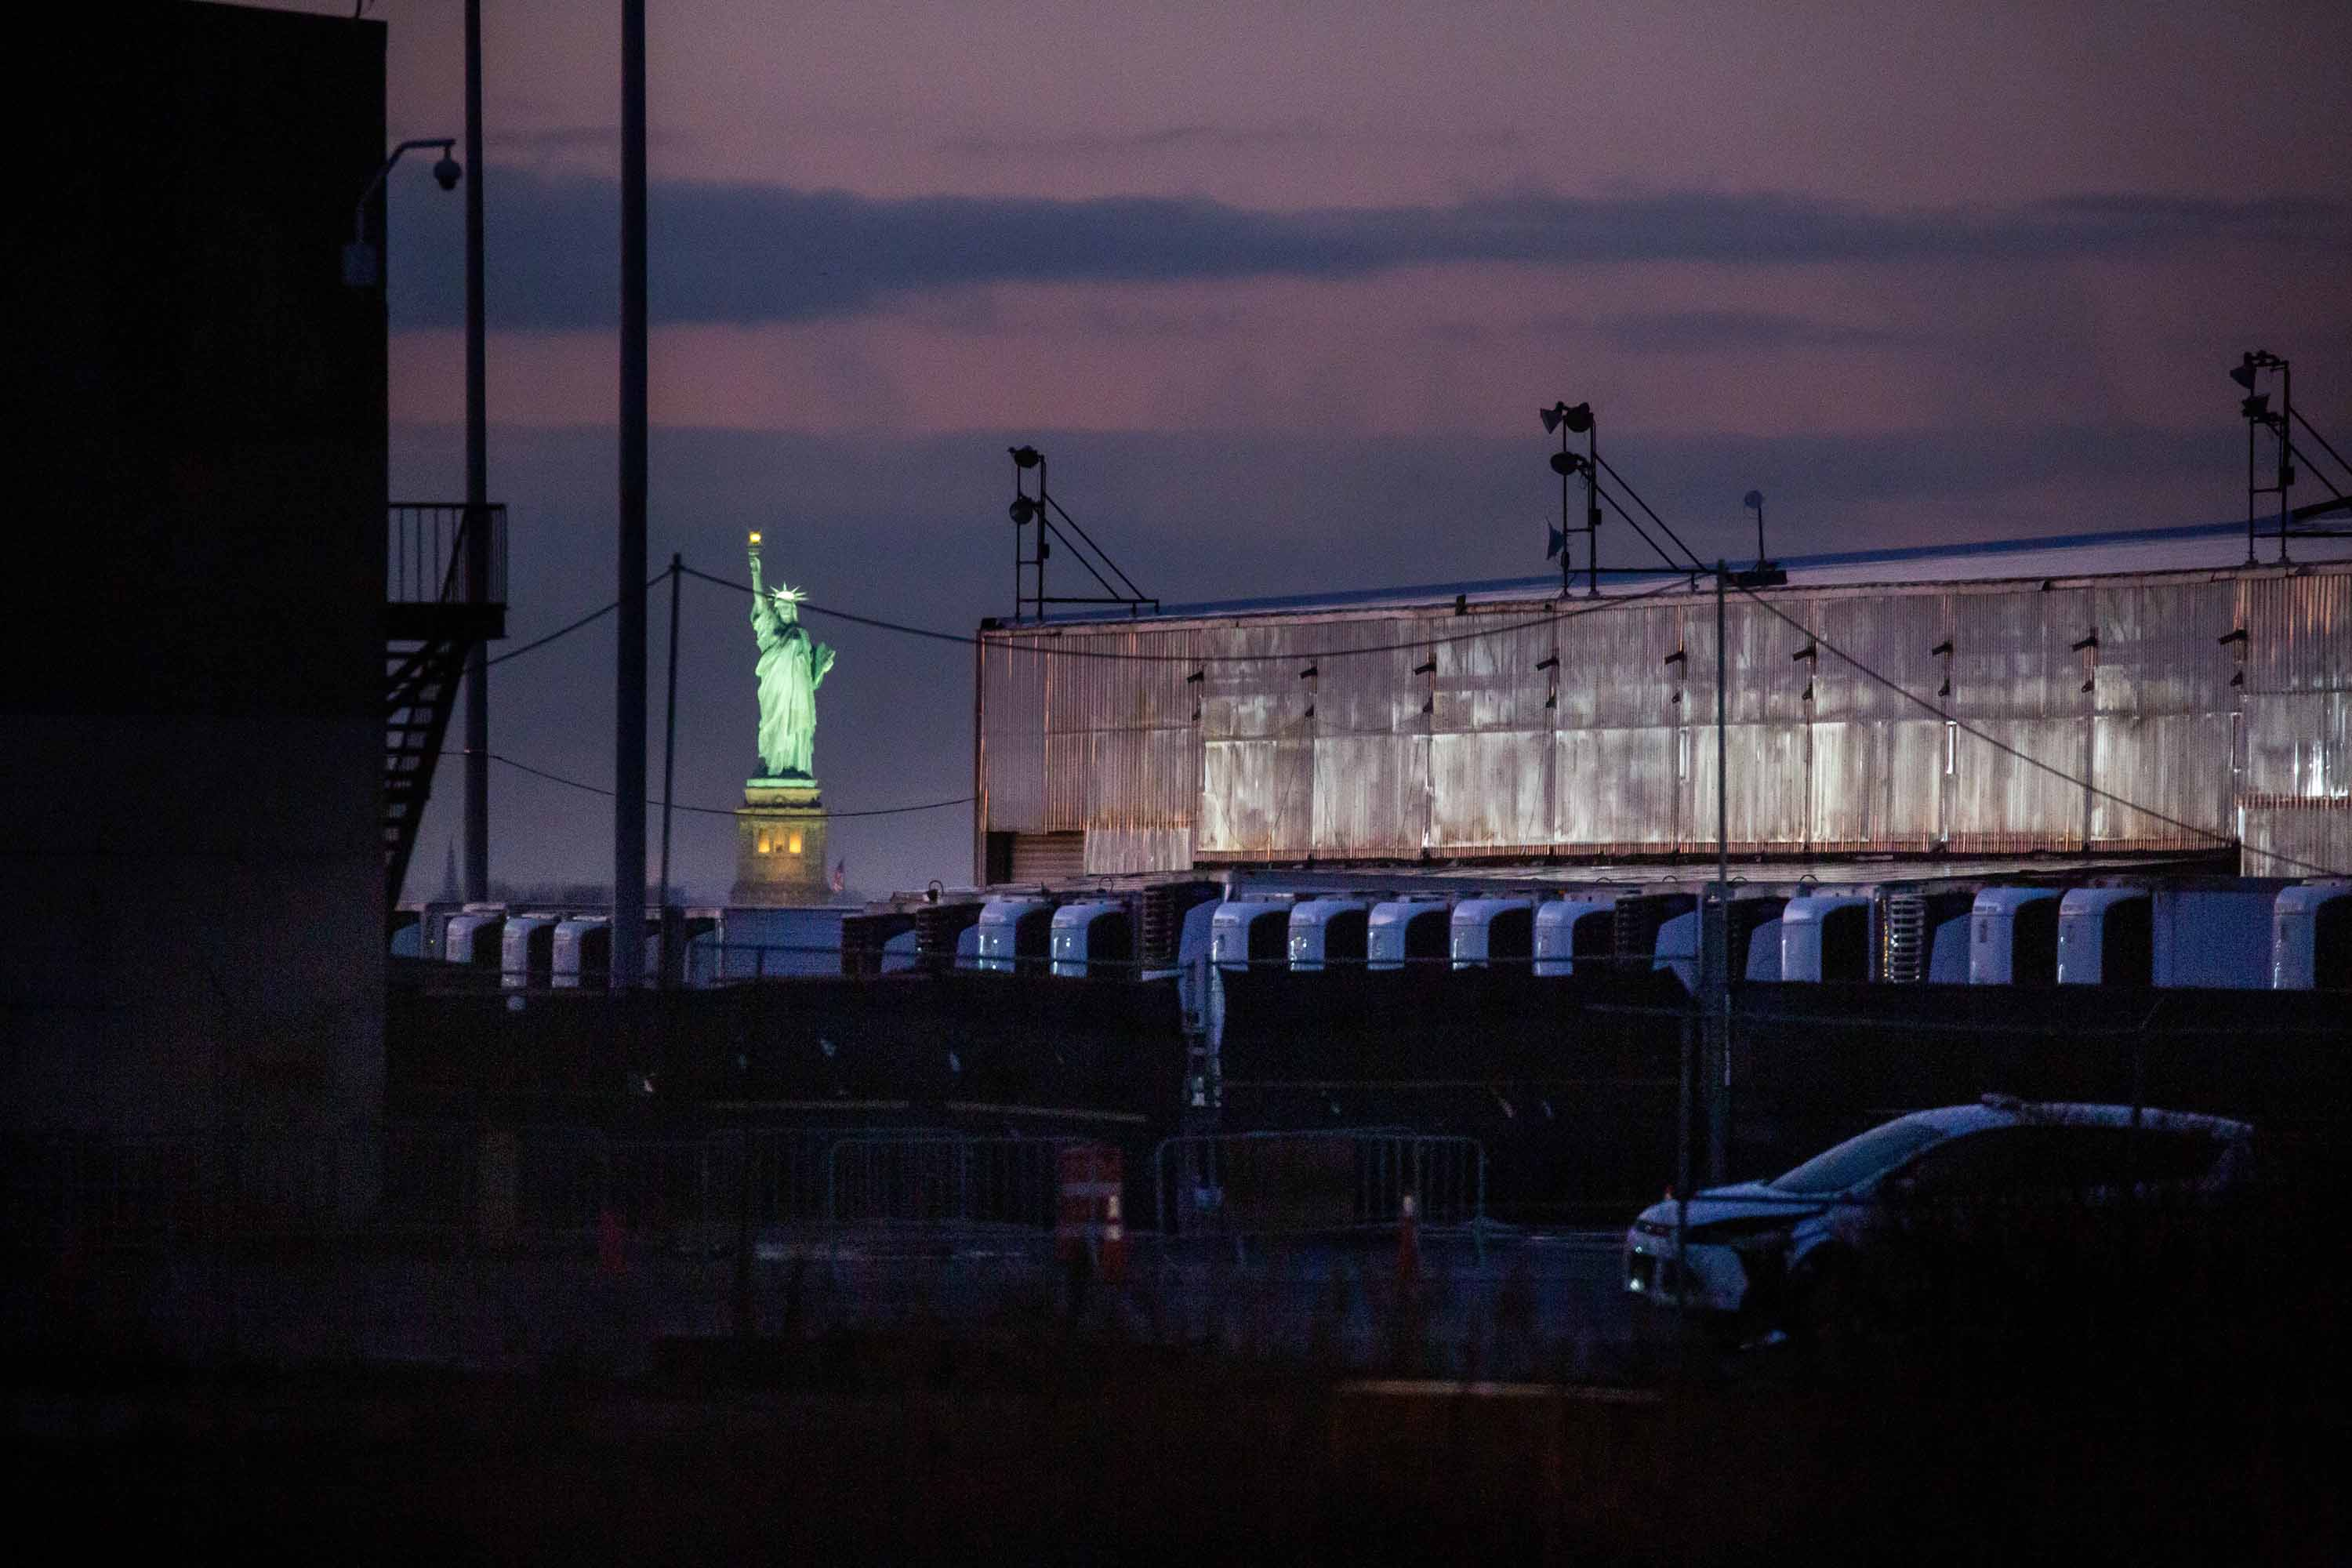 A Covid-19 disaster morgue made up of refrigerated trailers stands at the South Brooklyn Marine Terminal in New York, on December 14, 2020.